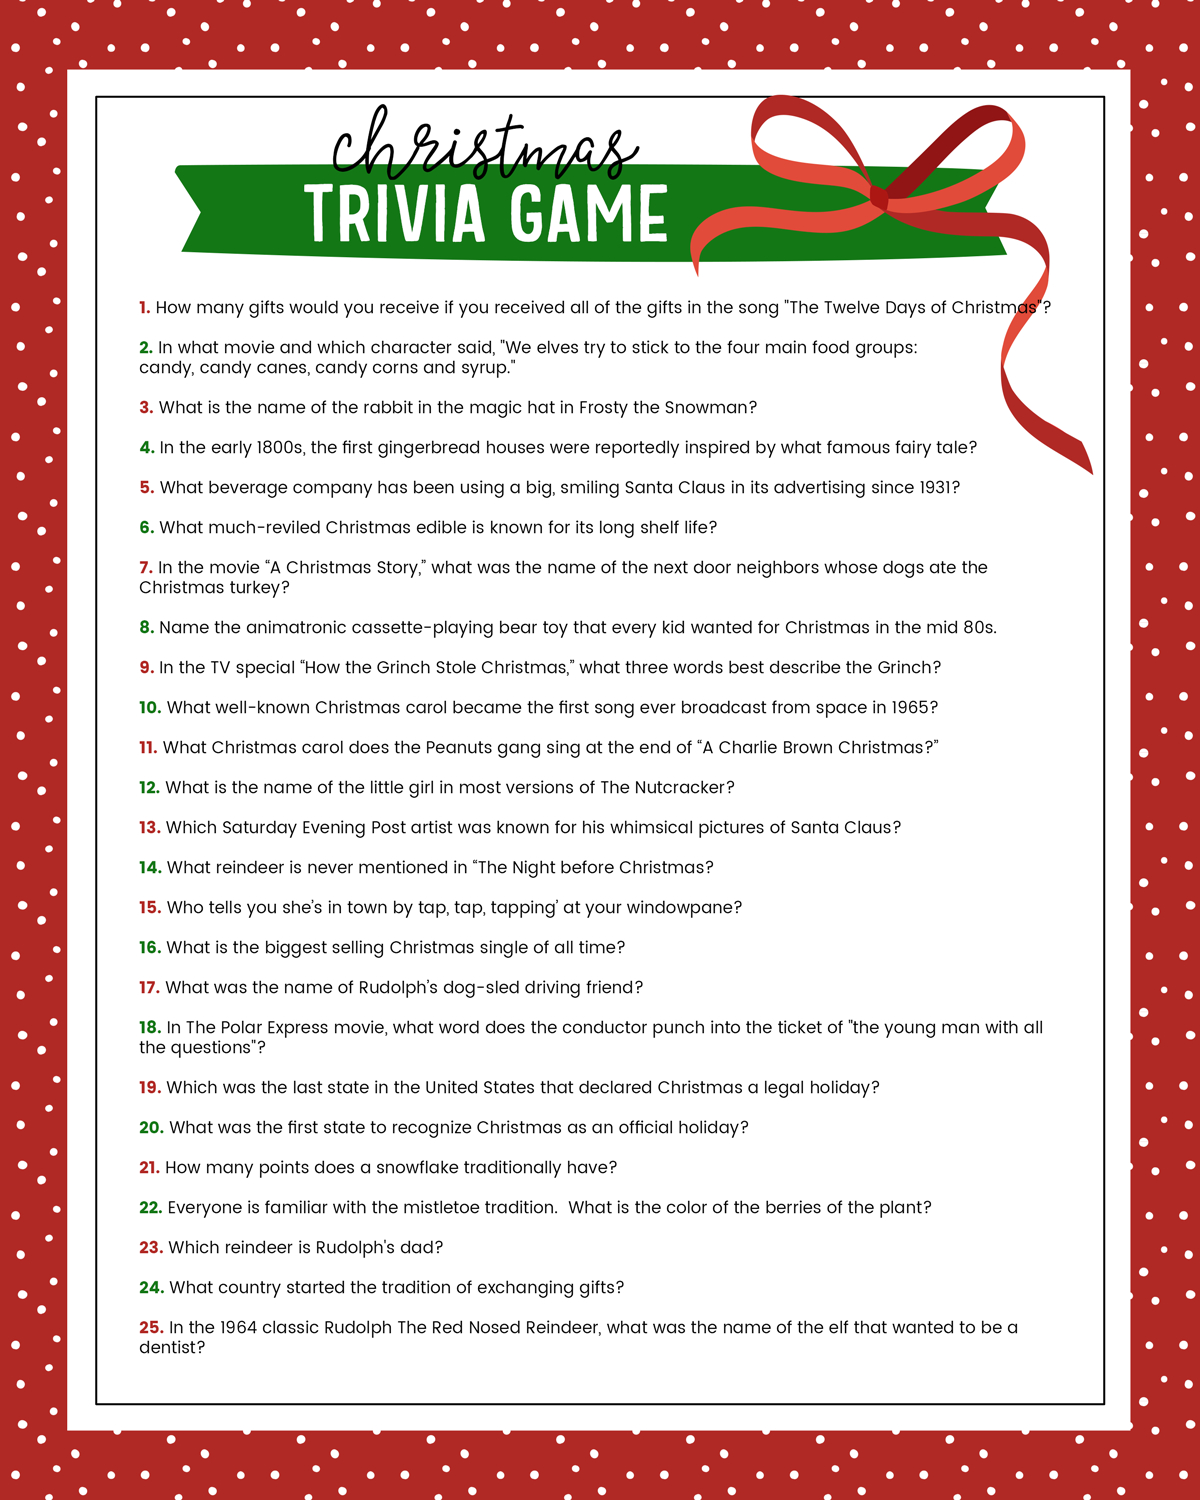 Free Christmas Trivia Game | Lil' Luna - Free Printable Christmas Riddle Games